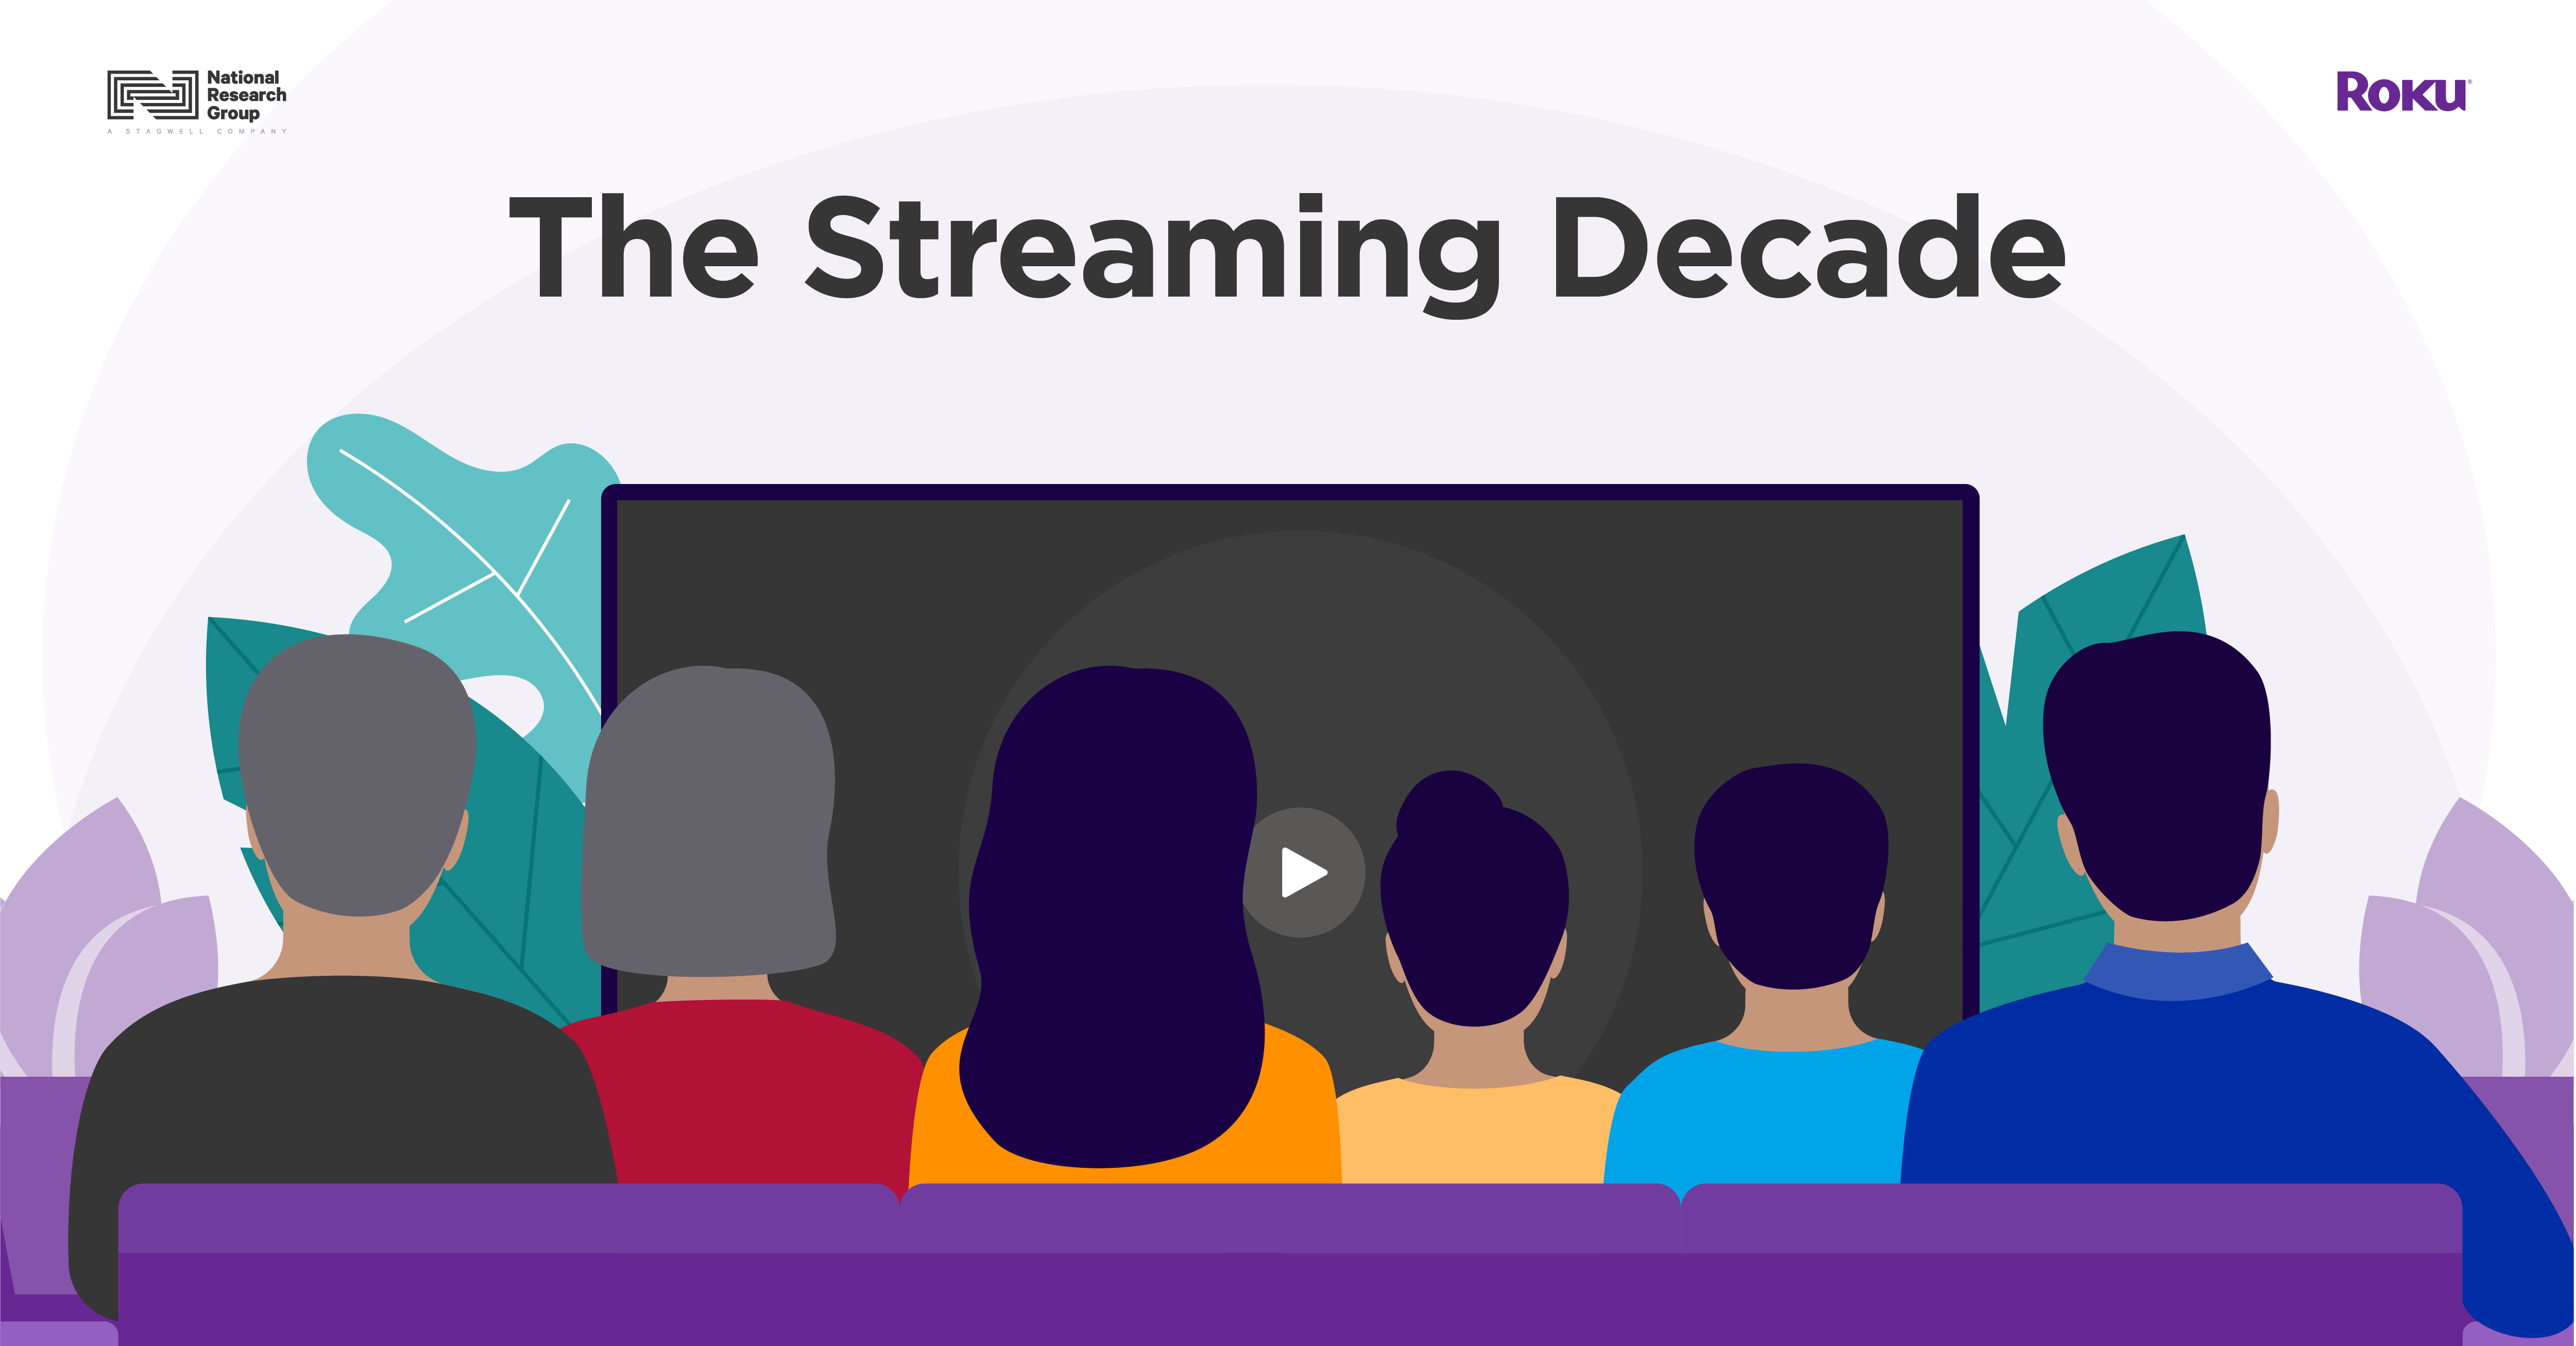 The Streaming Decade, 2021